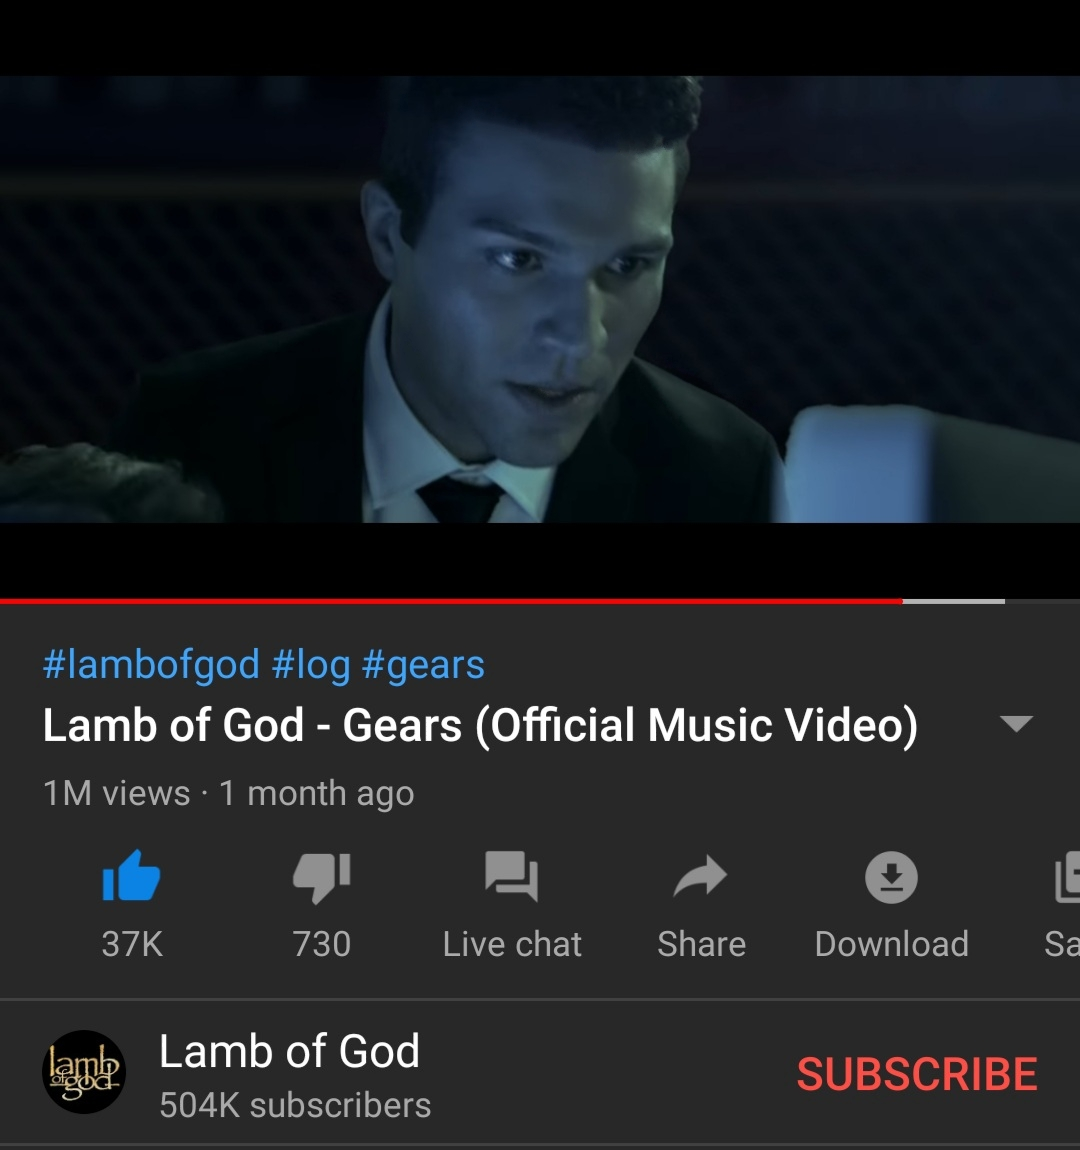 Julian Kerins Wows With Cameo In Lamb Of God's New Music Video